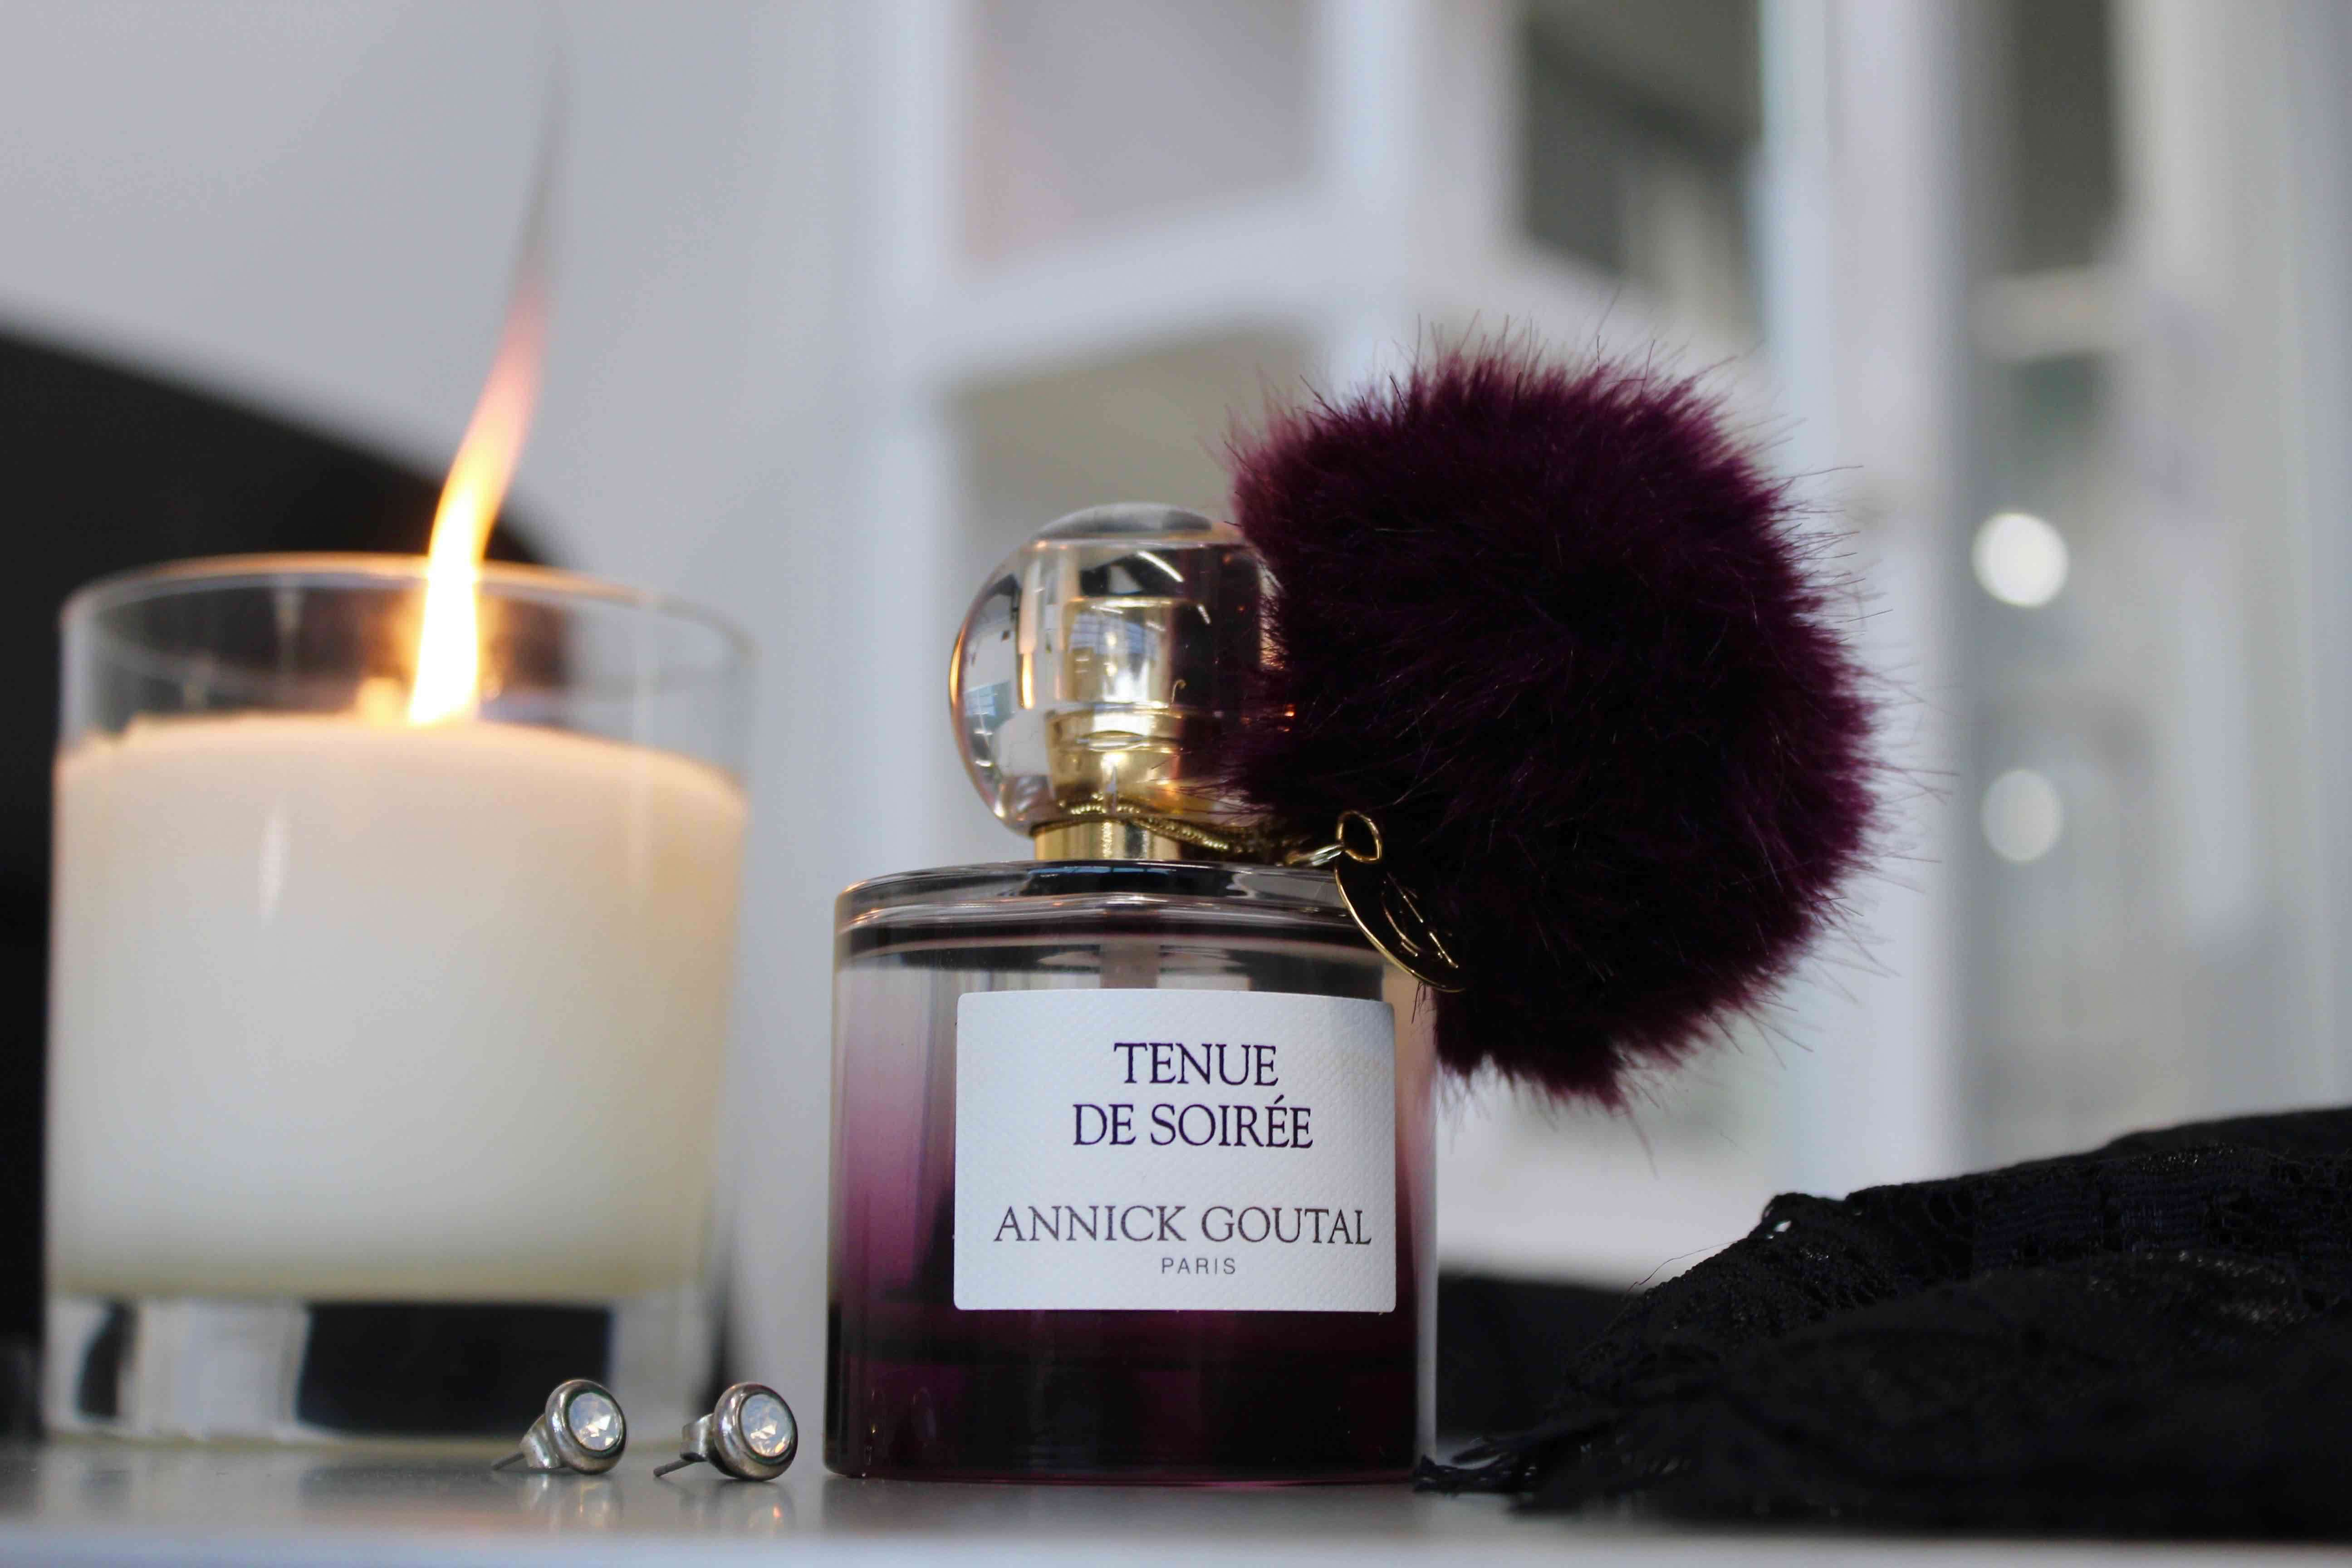 ThisThatBeauty Reviews: Tenue De Soirée by Annick Goutal